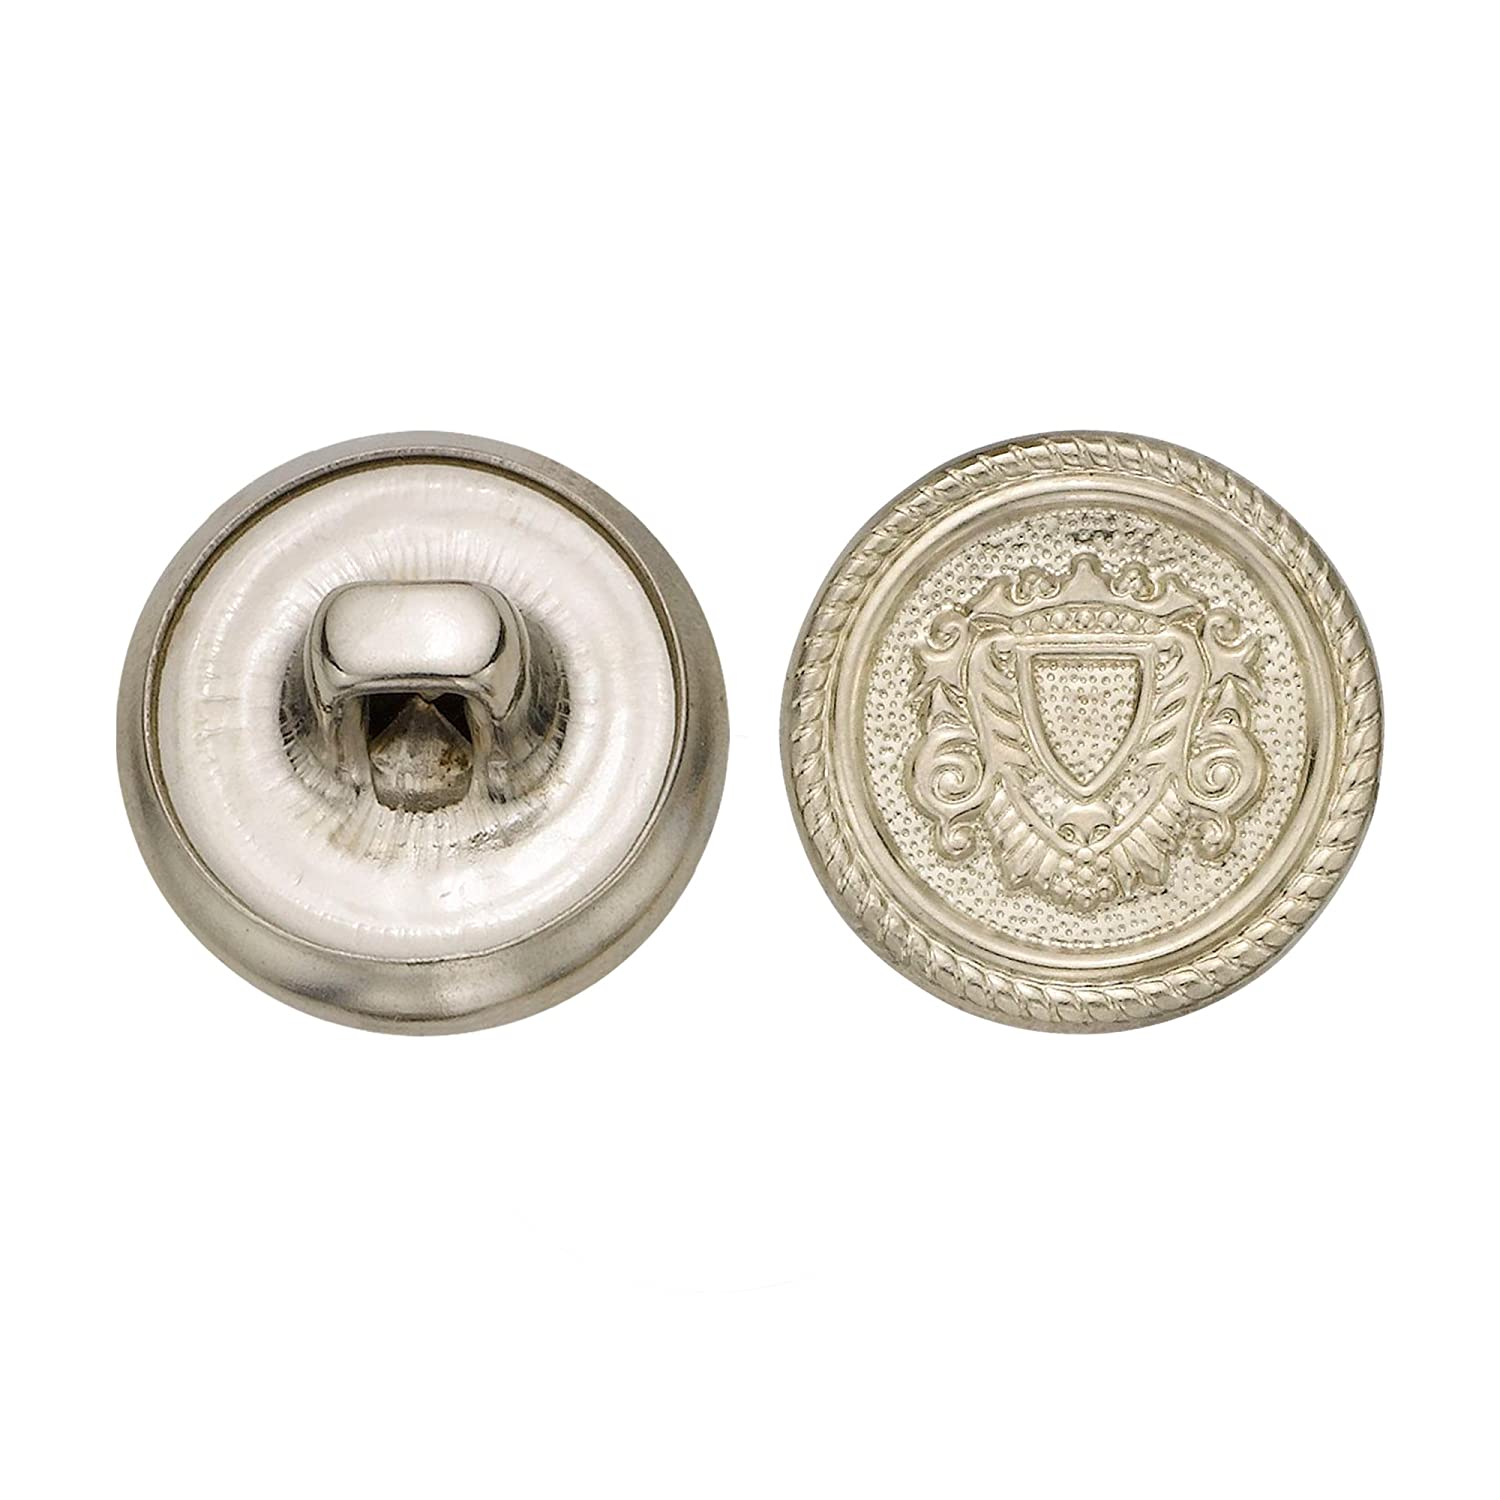 Size 24 Ligne Nickel 72-Pack C/&C Metal Products Corp C/&C Metal Products 5158 Rope Rim Crest Metal Button